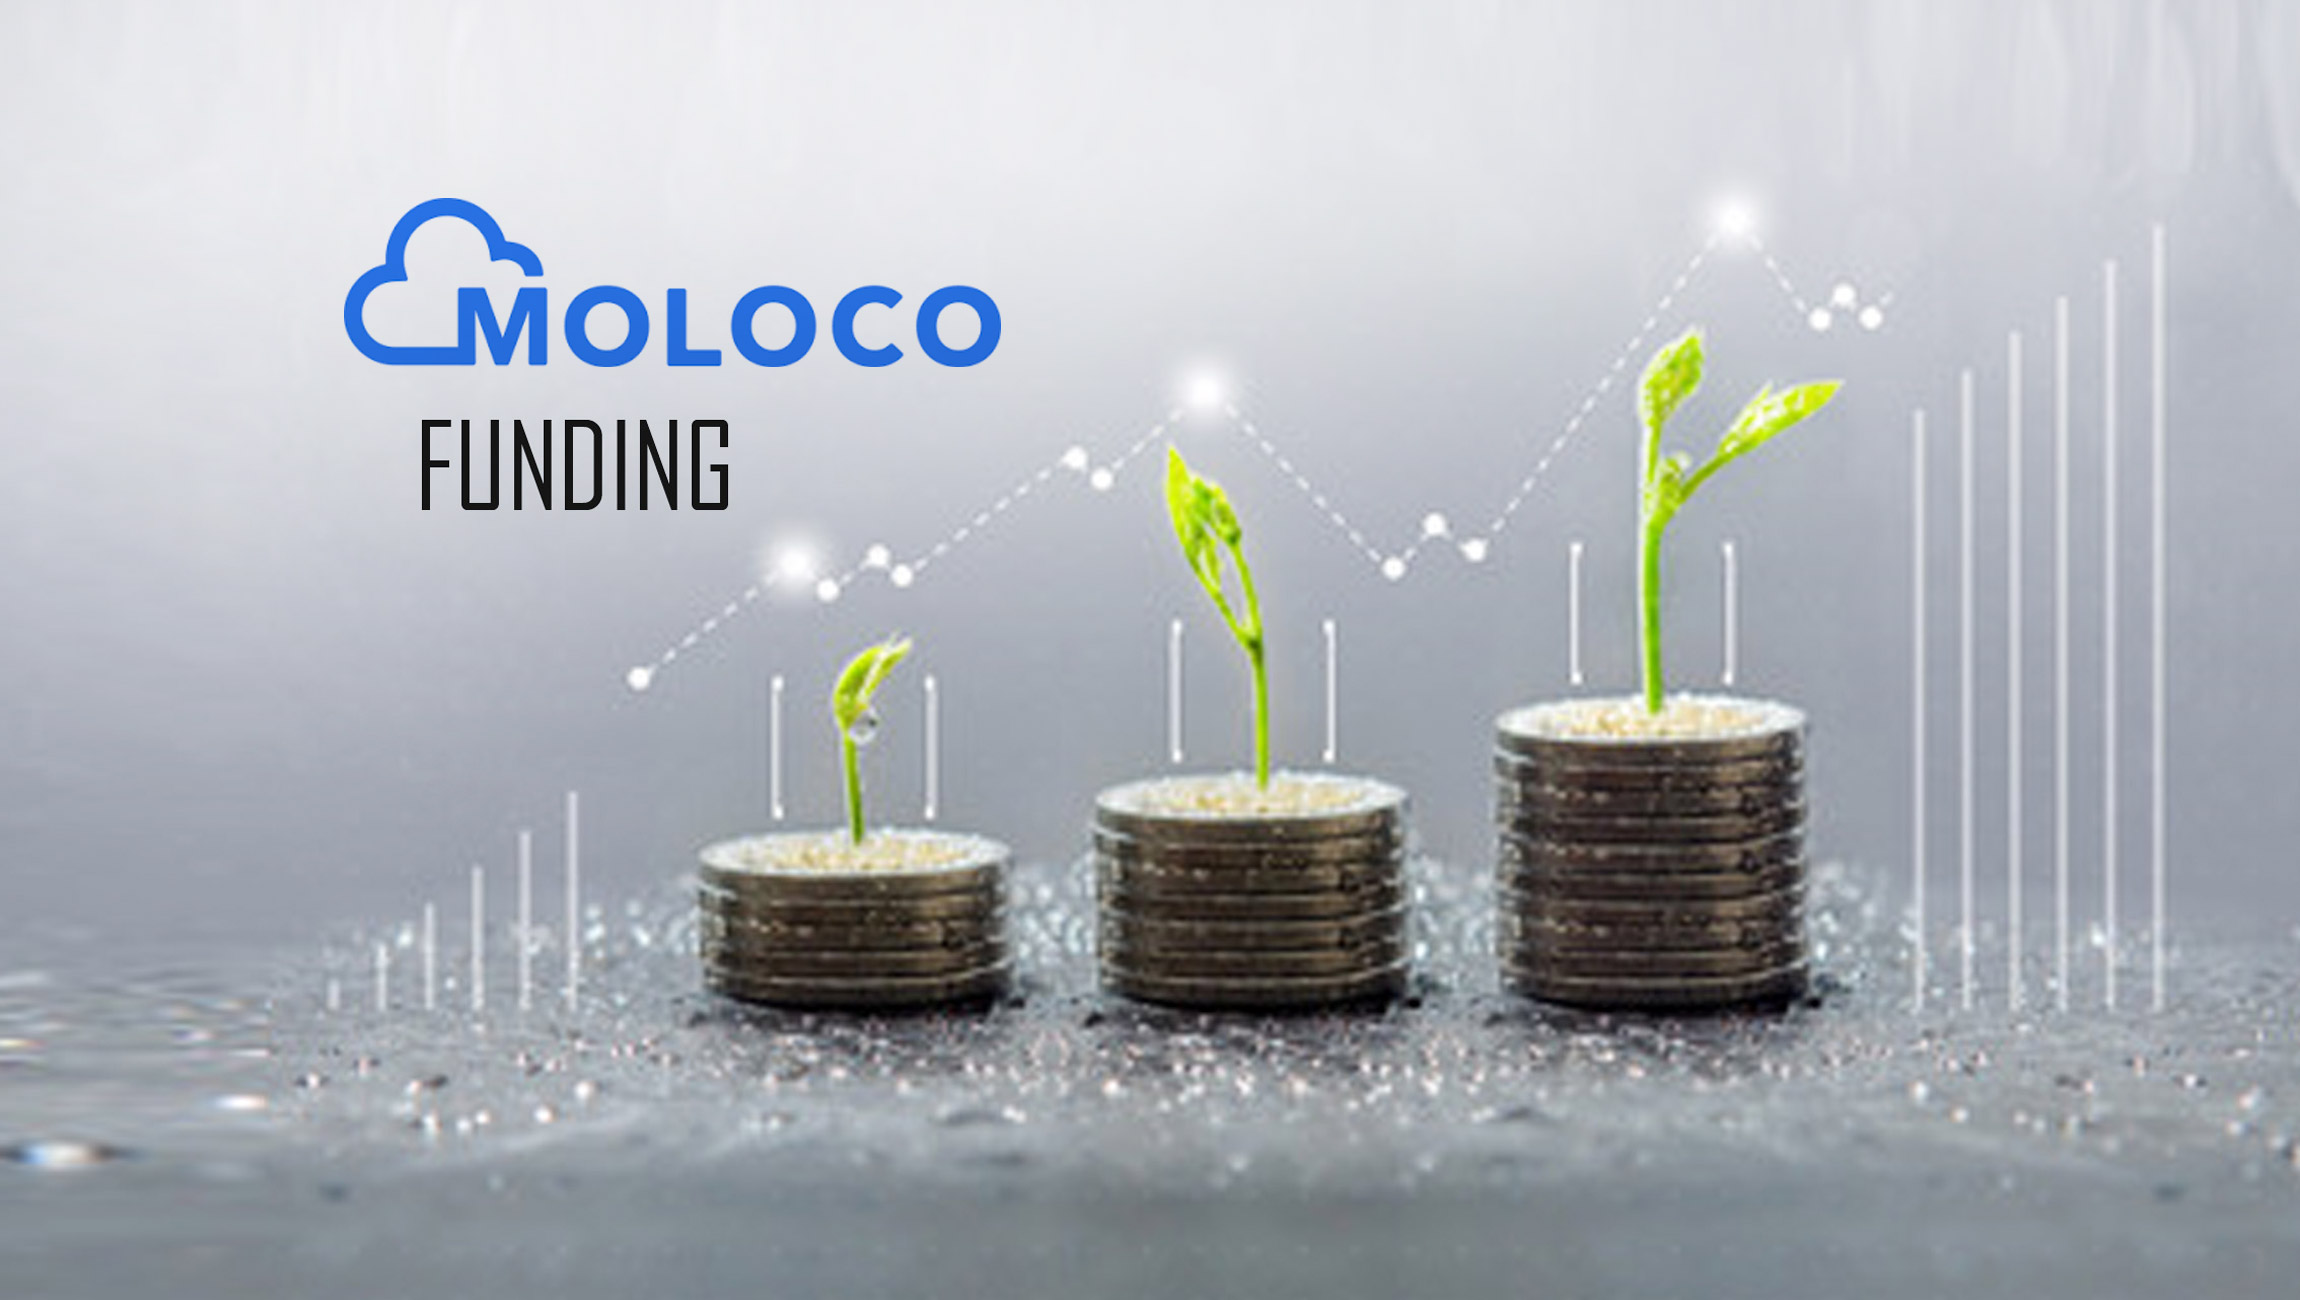 MOLOCO Receives New Funding at $1 Billion Valuation Amidst Rapid Growth